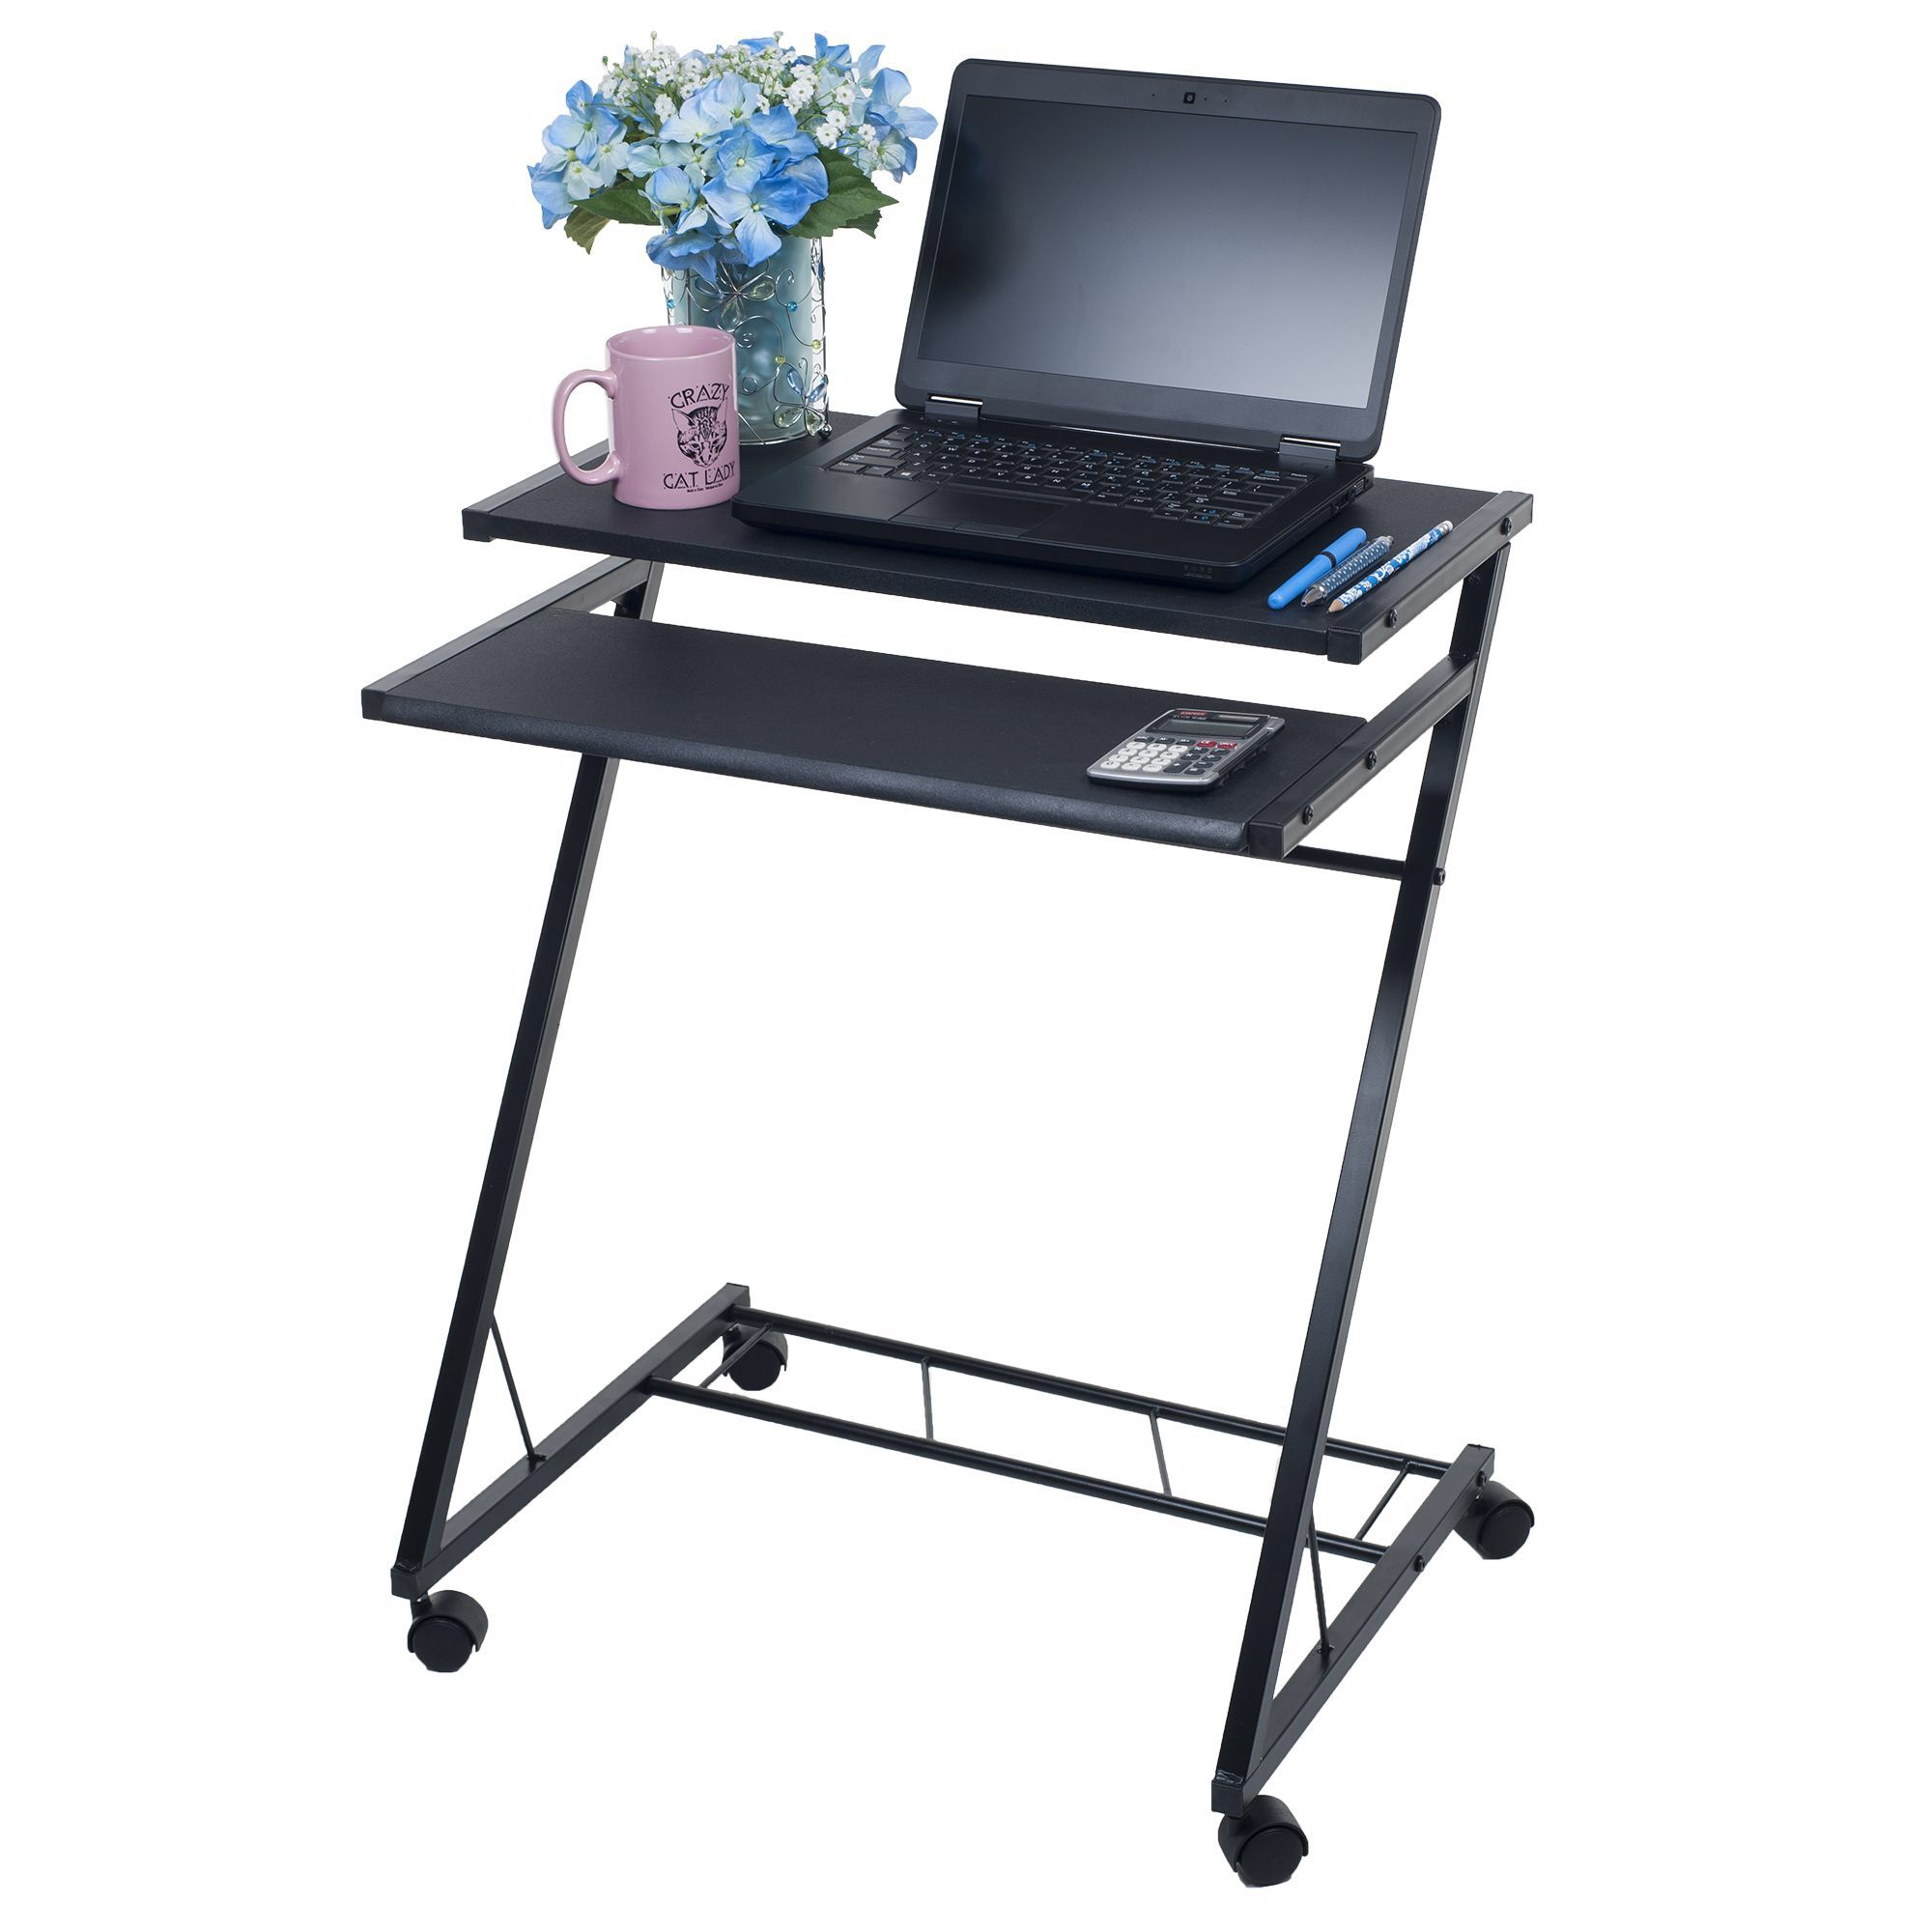 - Compact Mobile Computer Desk Home Office Furniture, Rolling Desk